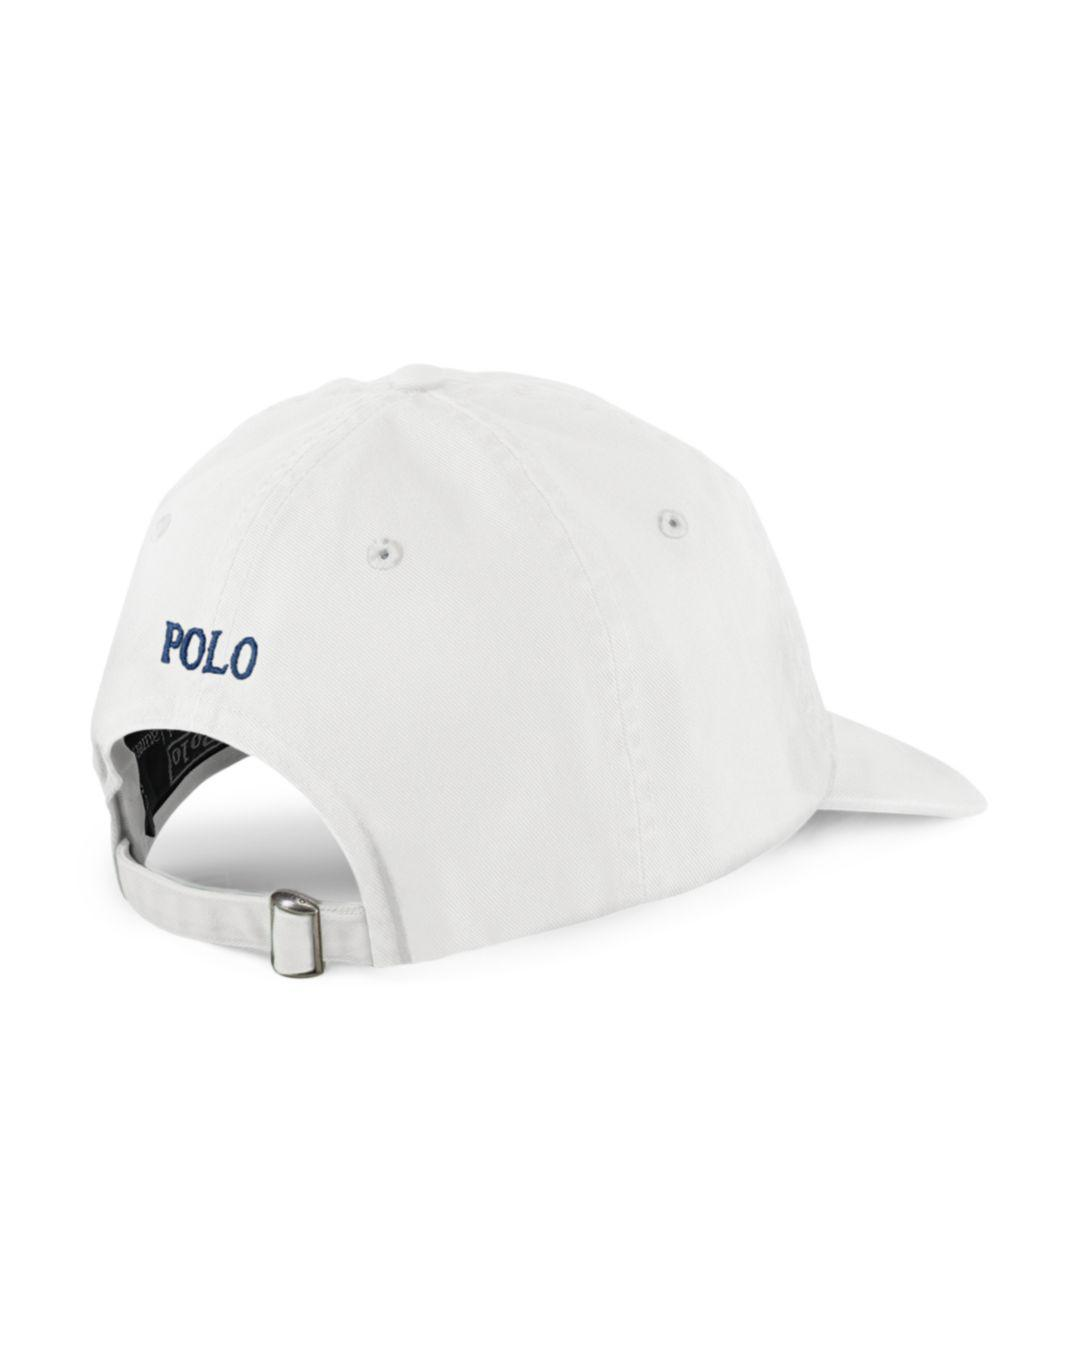 Lyst - Polo Ralph Lauren Signature Pony Hat in White for Men - Save 4% eaac2cc4cae2